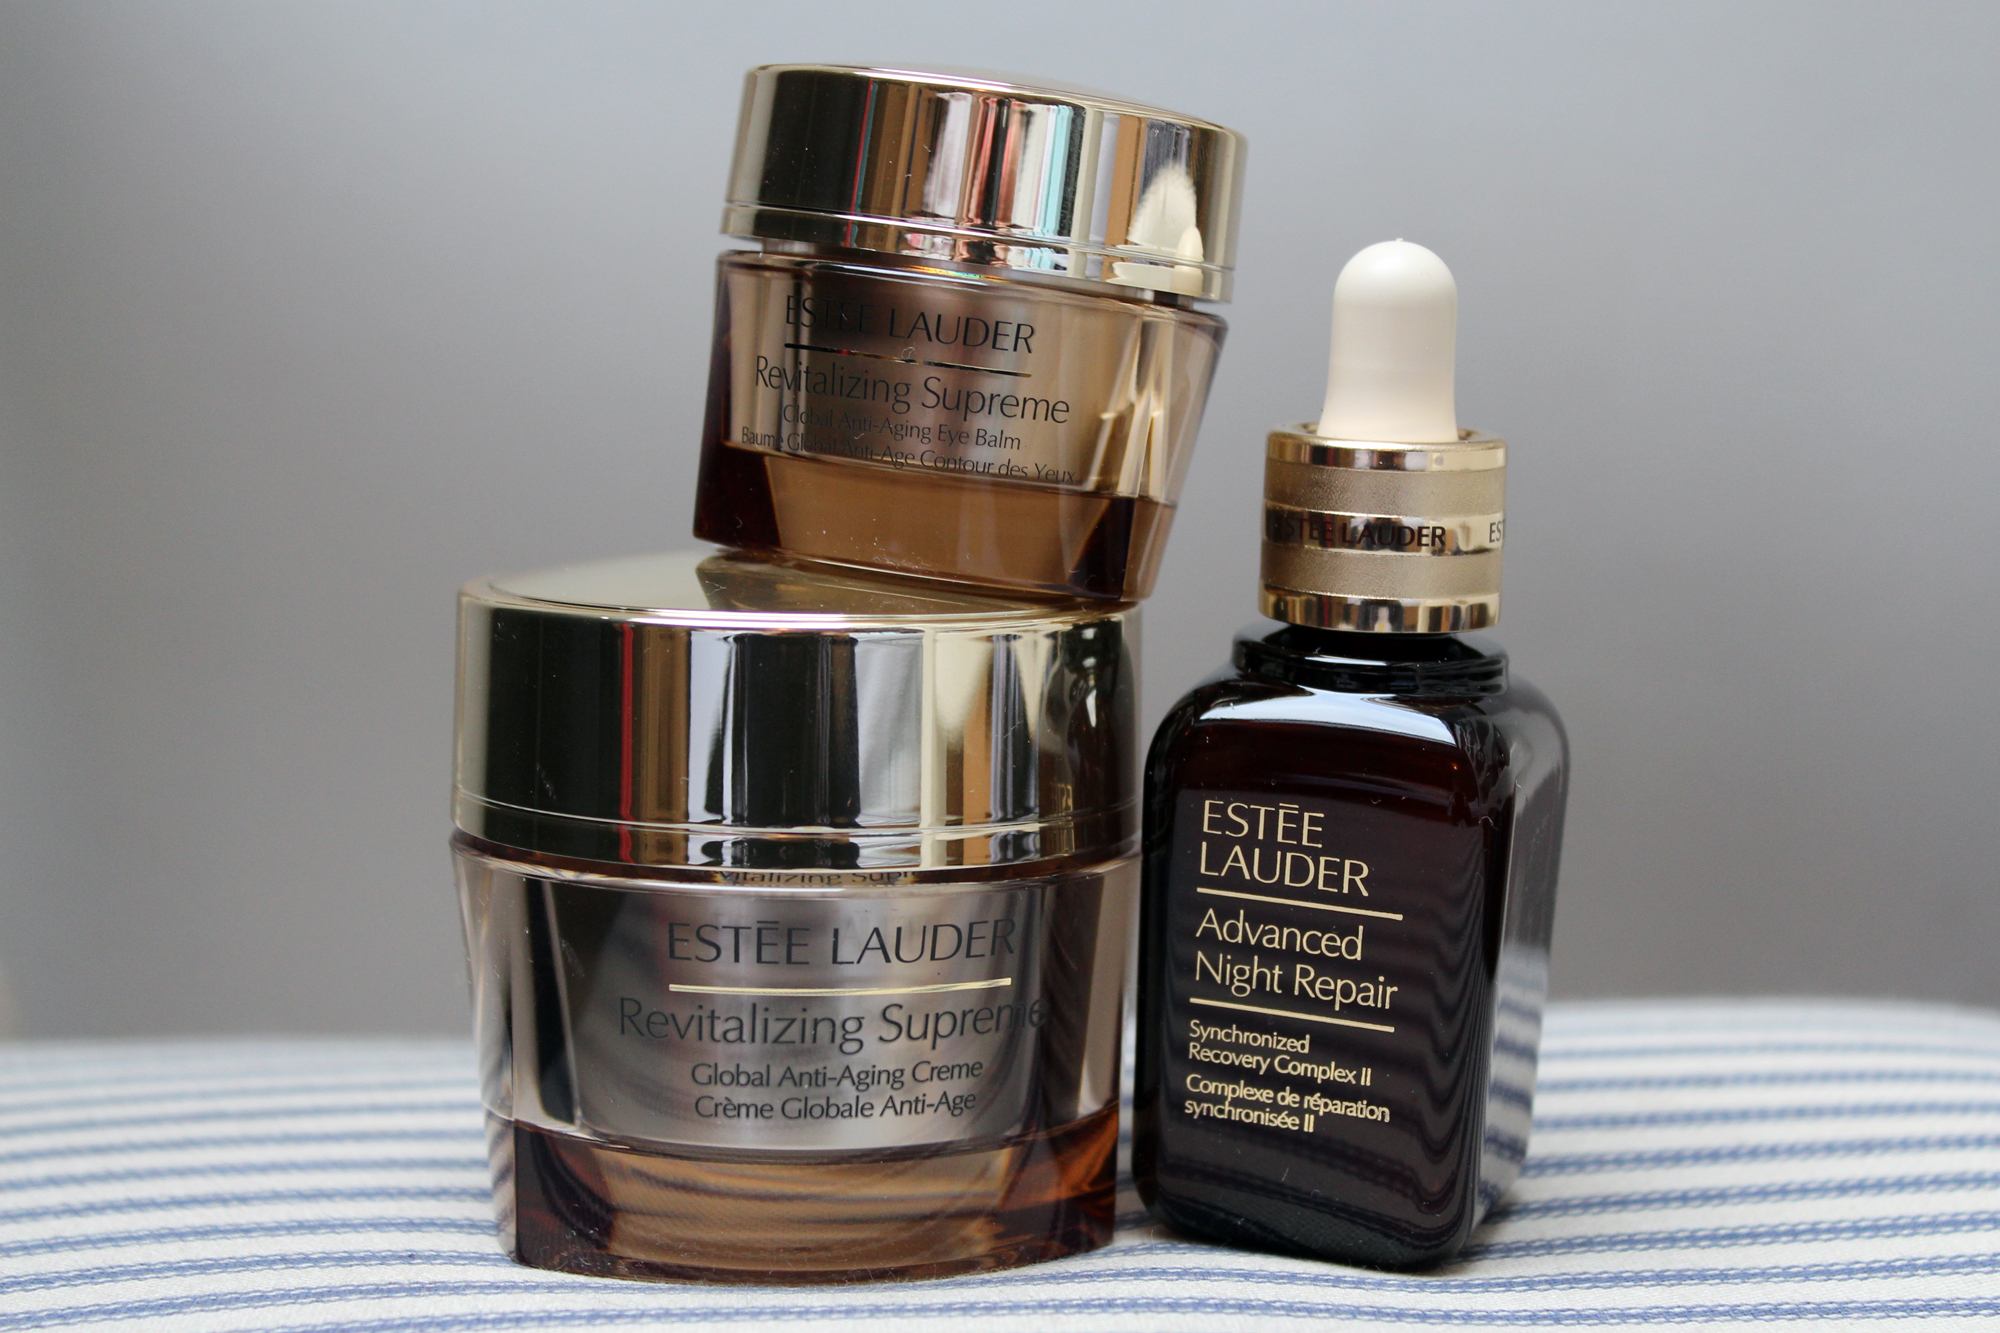 estee-lauder-new-revitalizing-supreme-eye